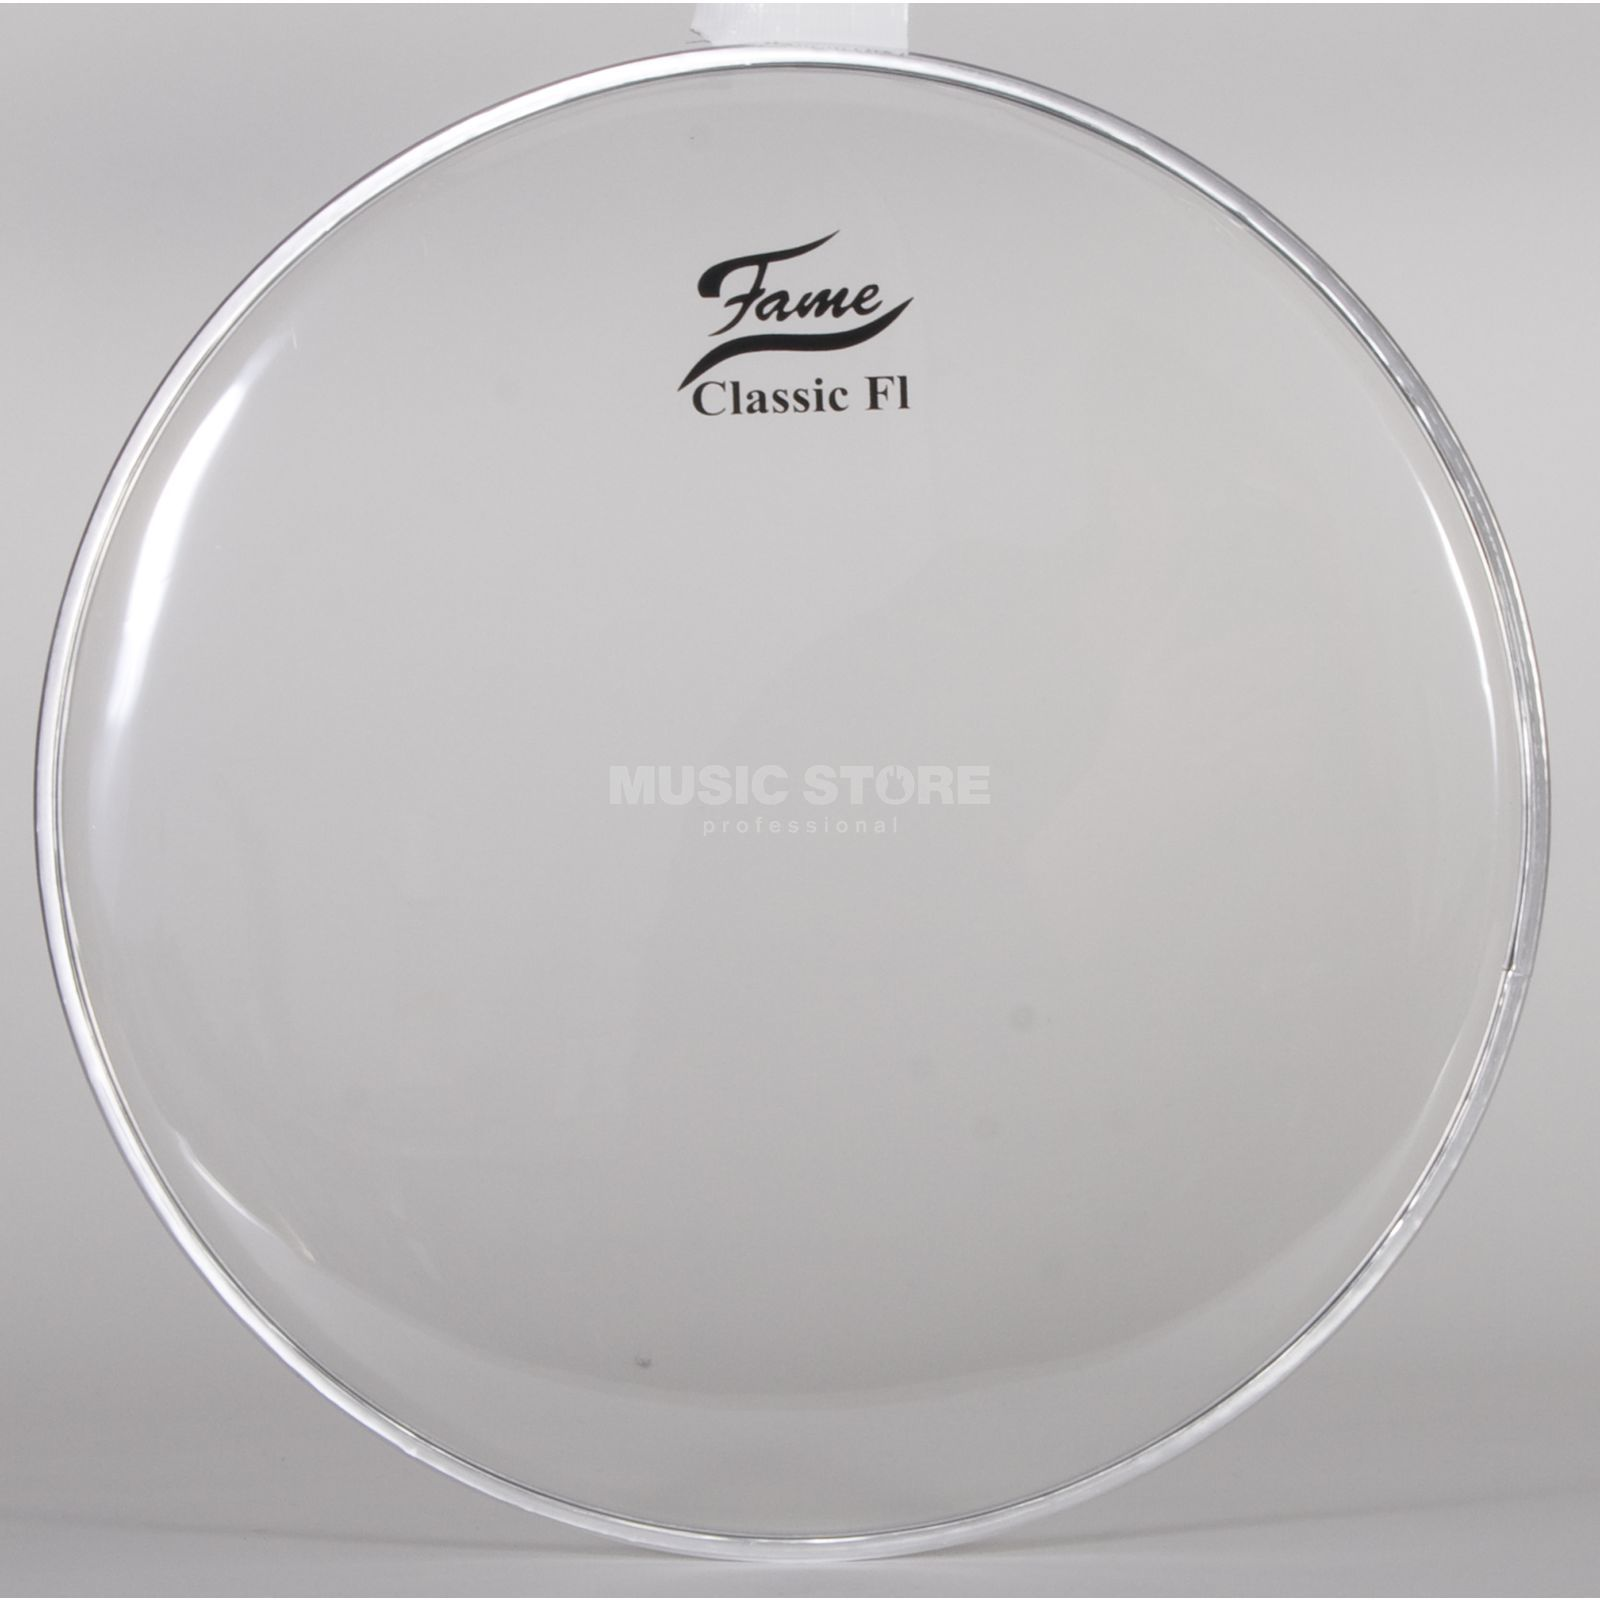 "Fame TomFell Classic F1, 8"", clear Produktbild"